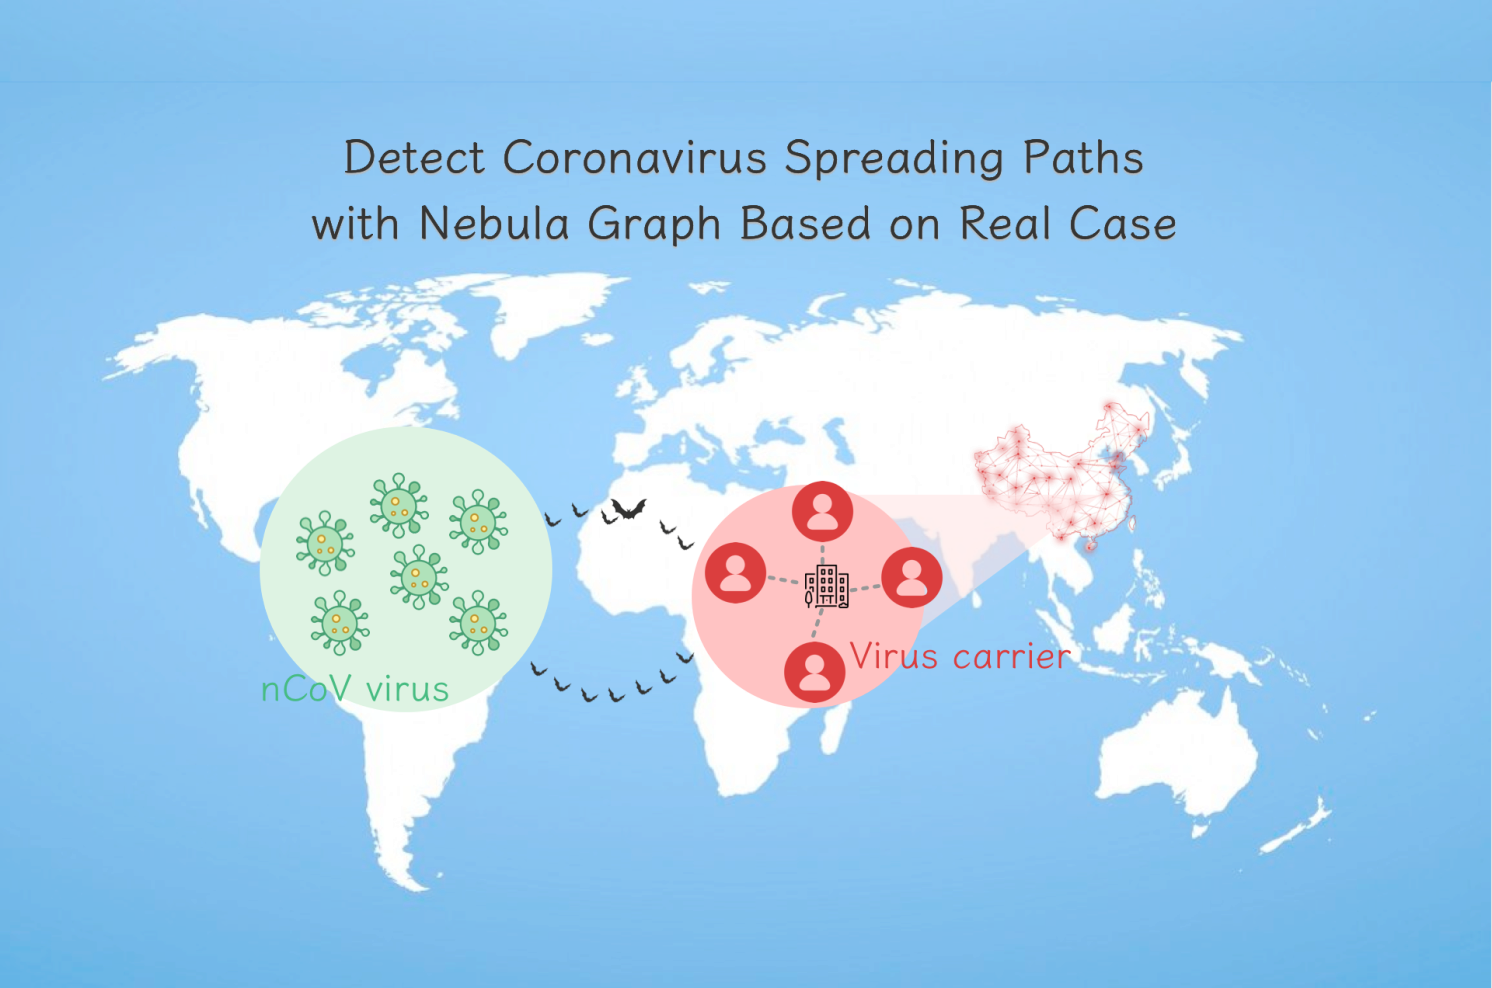 Detect Corona Virus Spreading With Graph Database Based on a Real Case